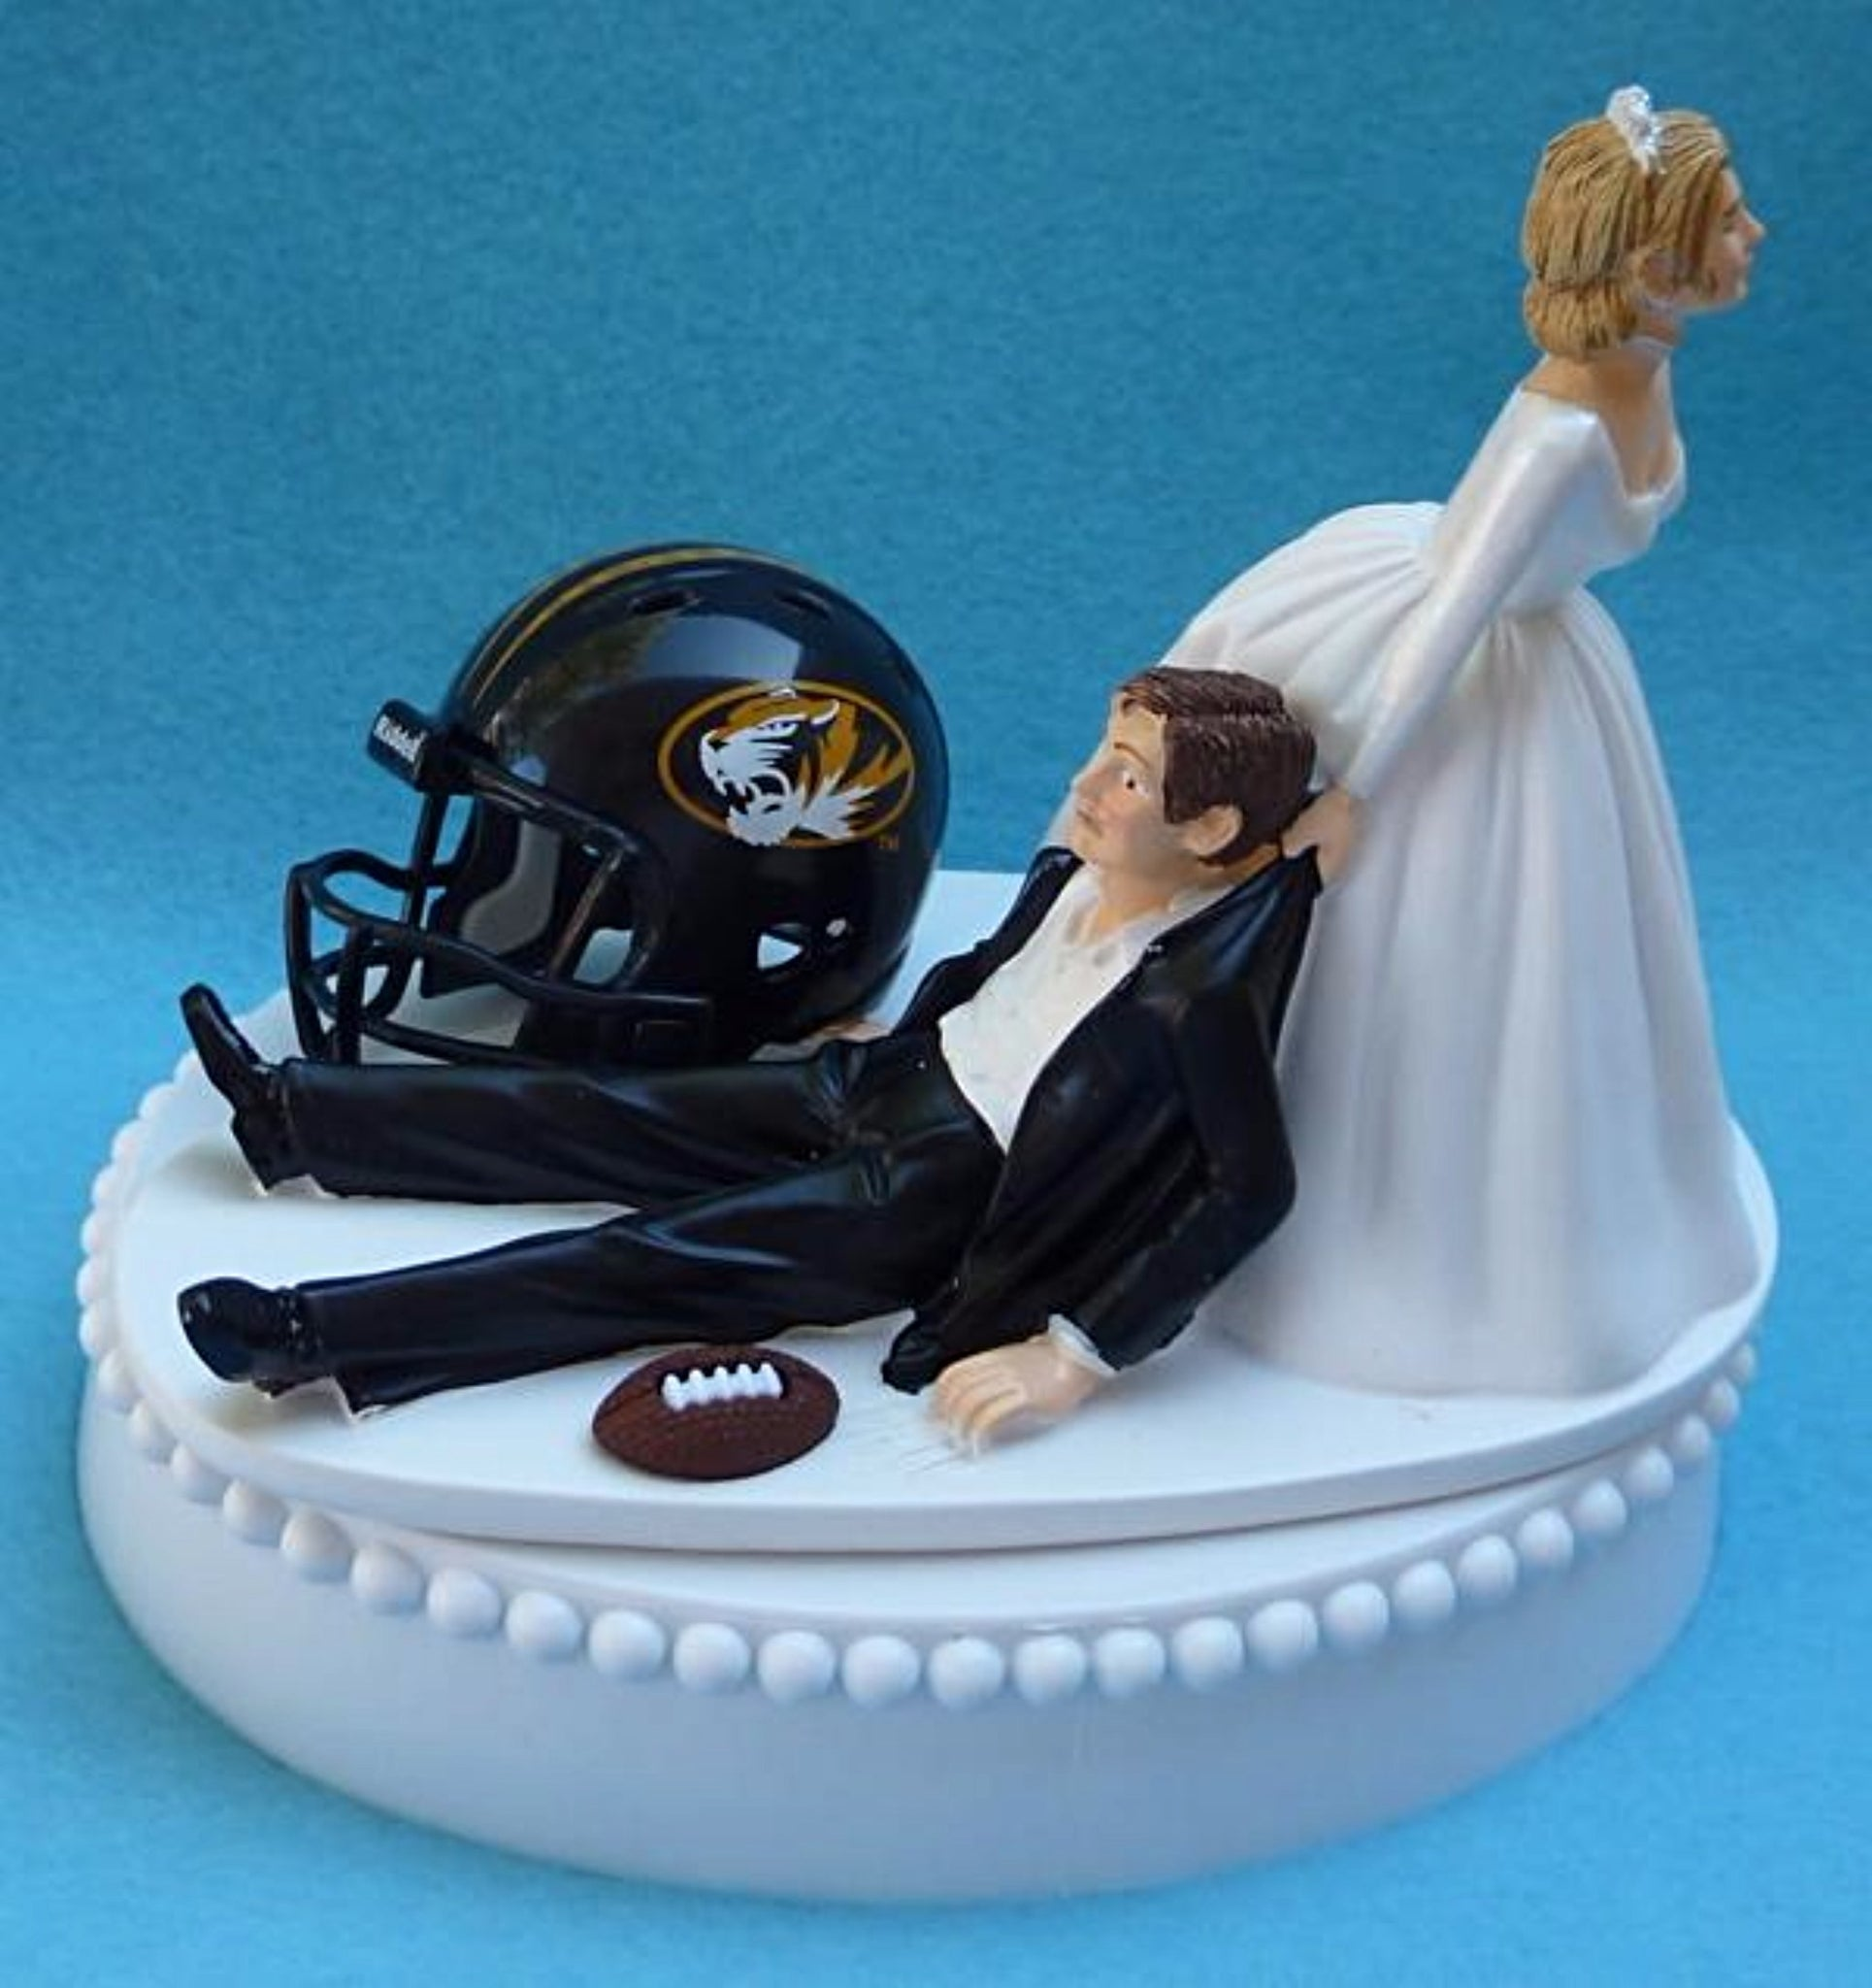 University of Missouri Tigers wedding cake topper football UM Mizzou groom's cake top sports fans fun humorous reception gift bride dragging groom Fun Wedding Things